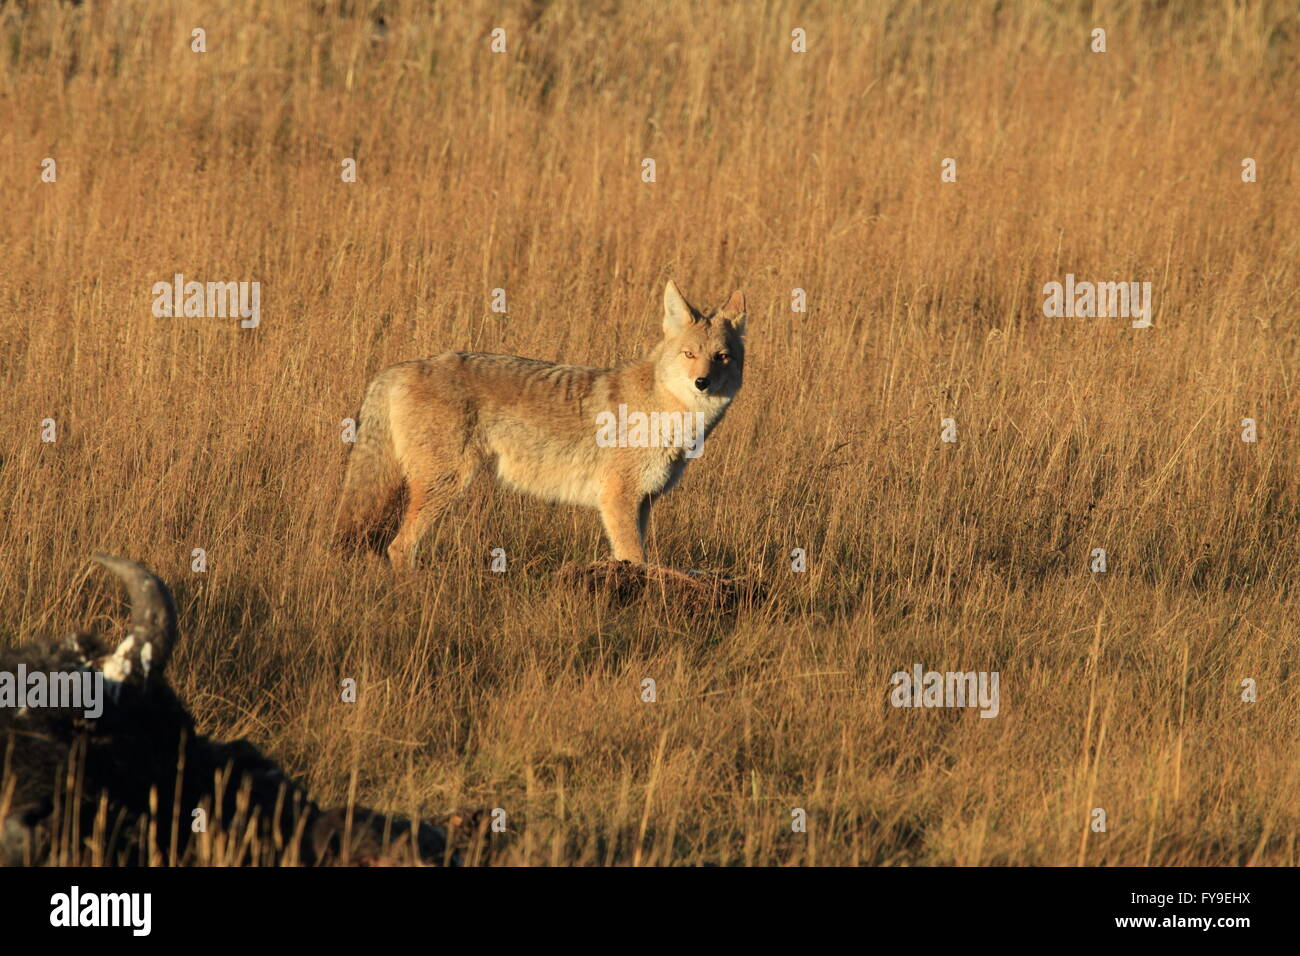 Koyote canis latrans coyote Yellowstone NP Wyoming USA - Stock Image